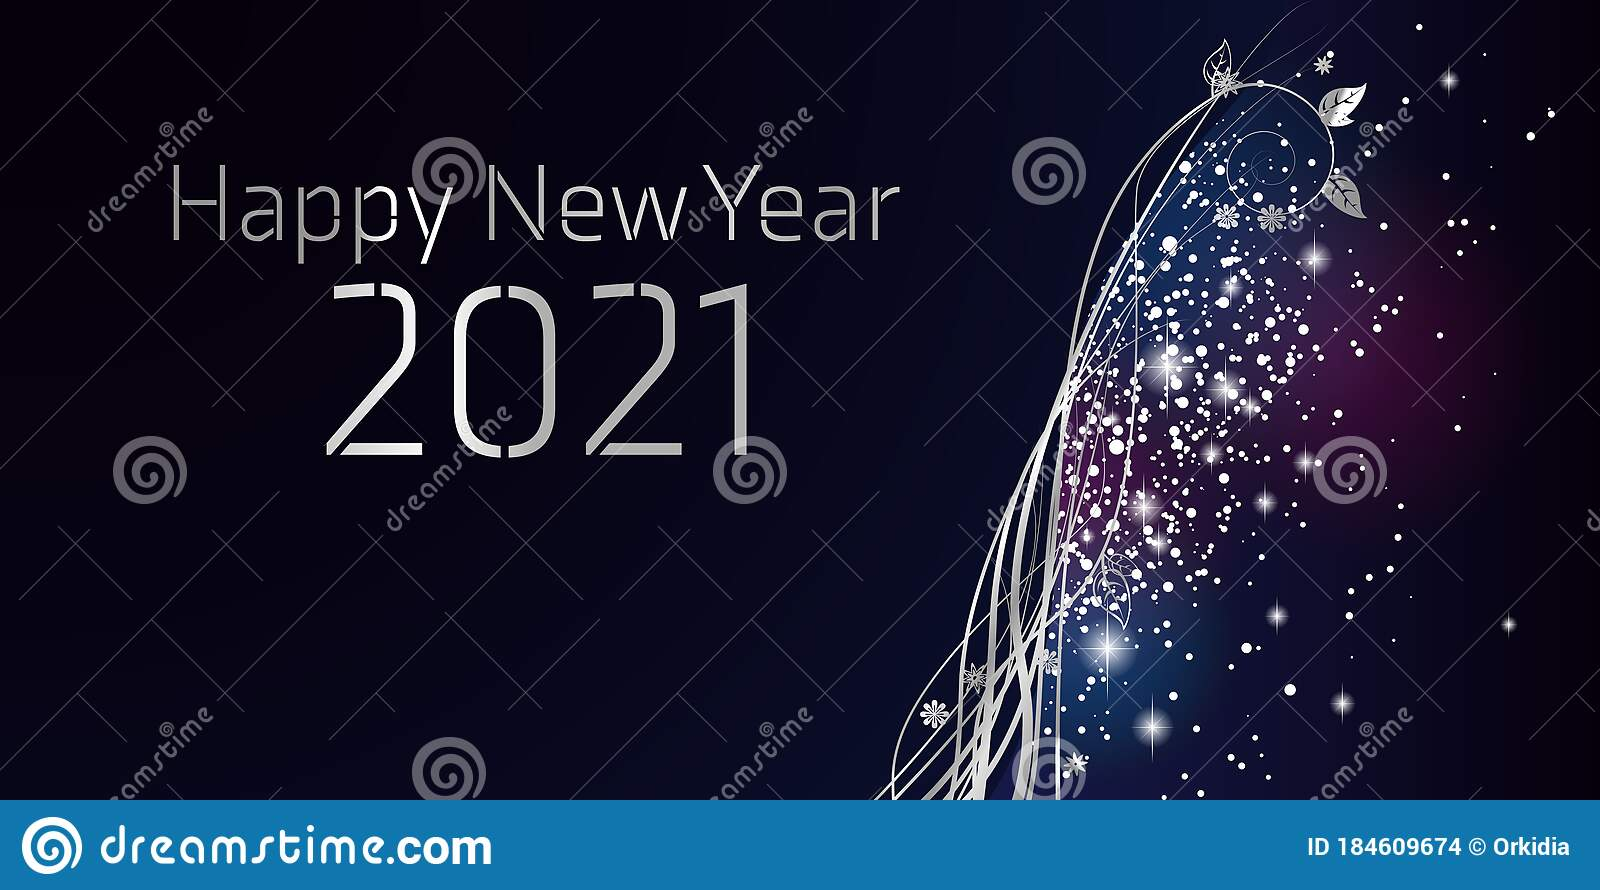 Happy New year 2021 stock vector. Illustration of ...